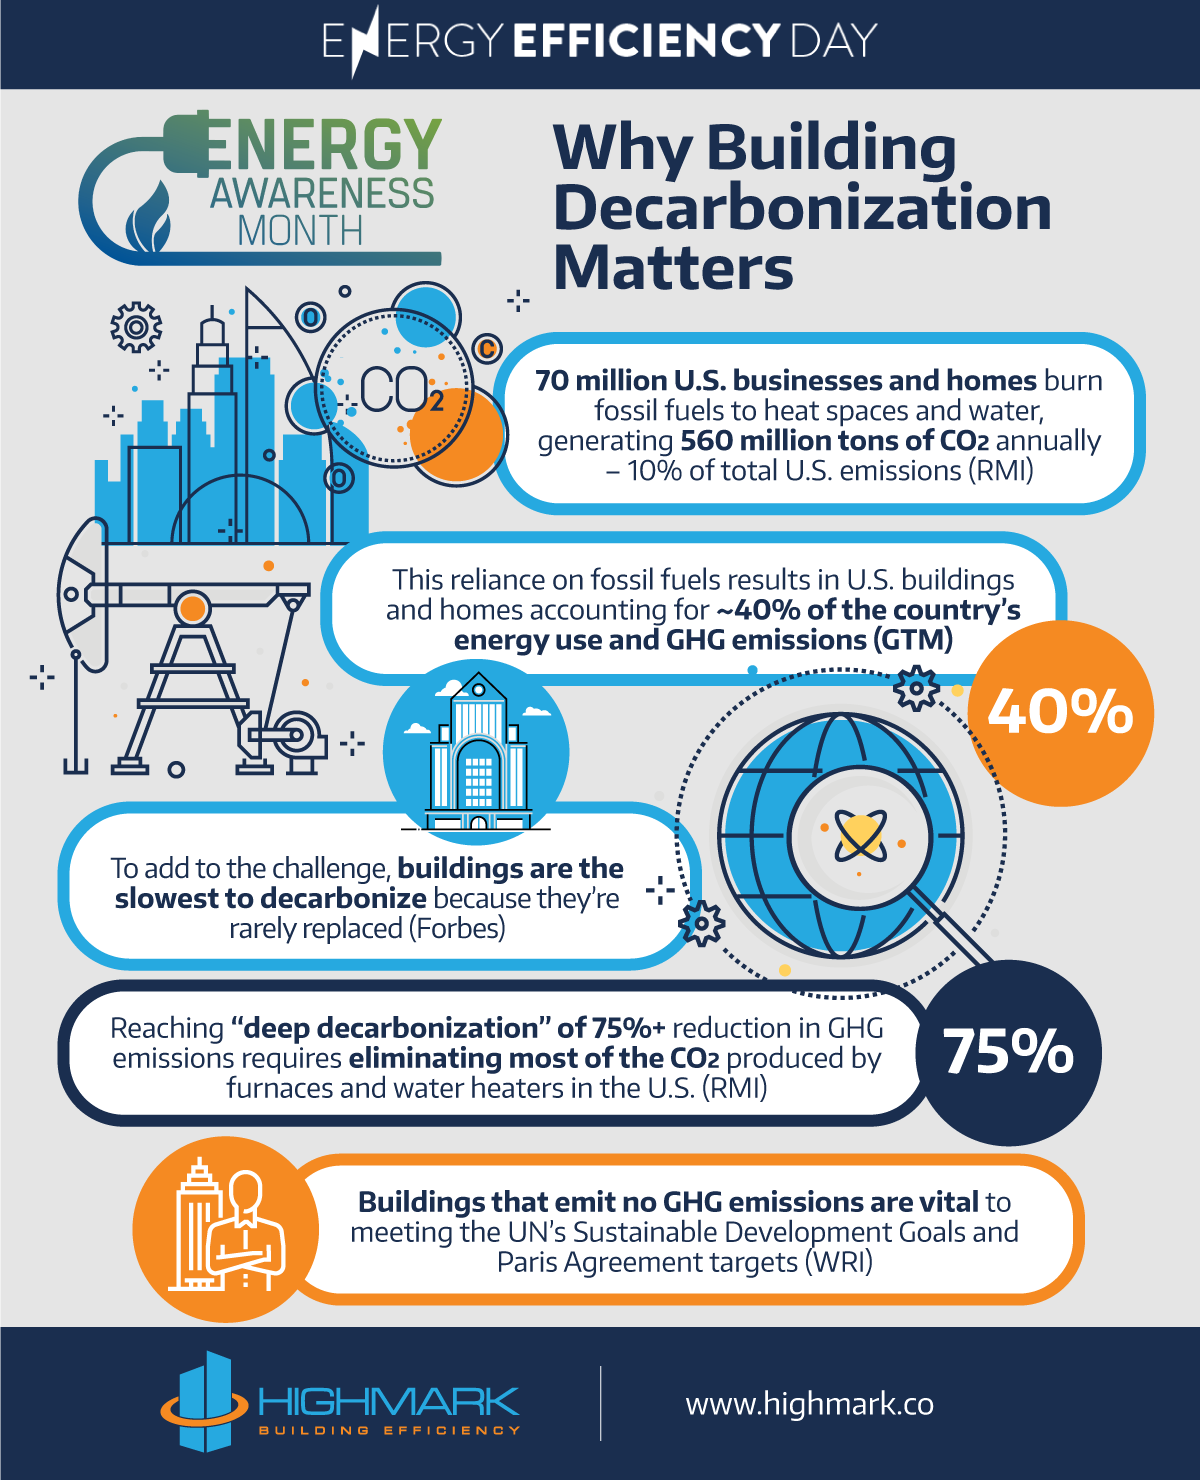 Why Building Decarbonization Matters - HIGHMARK | Building Efficiency